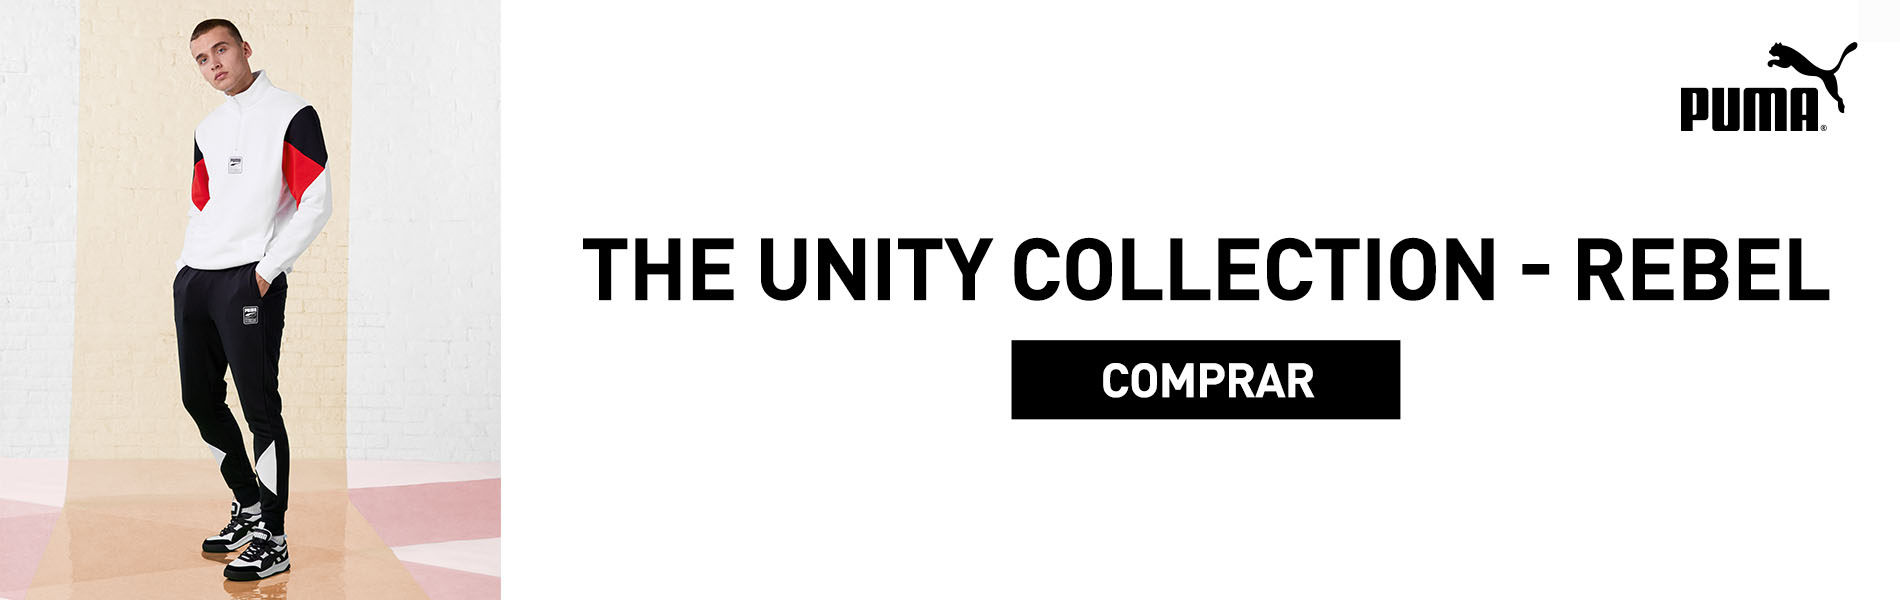 PUMA THE UNITY COLLECTION